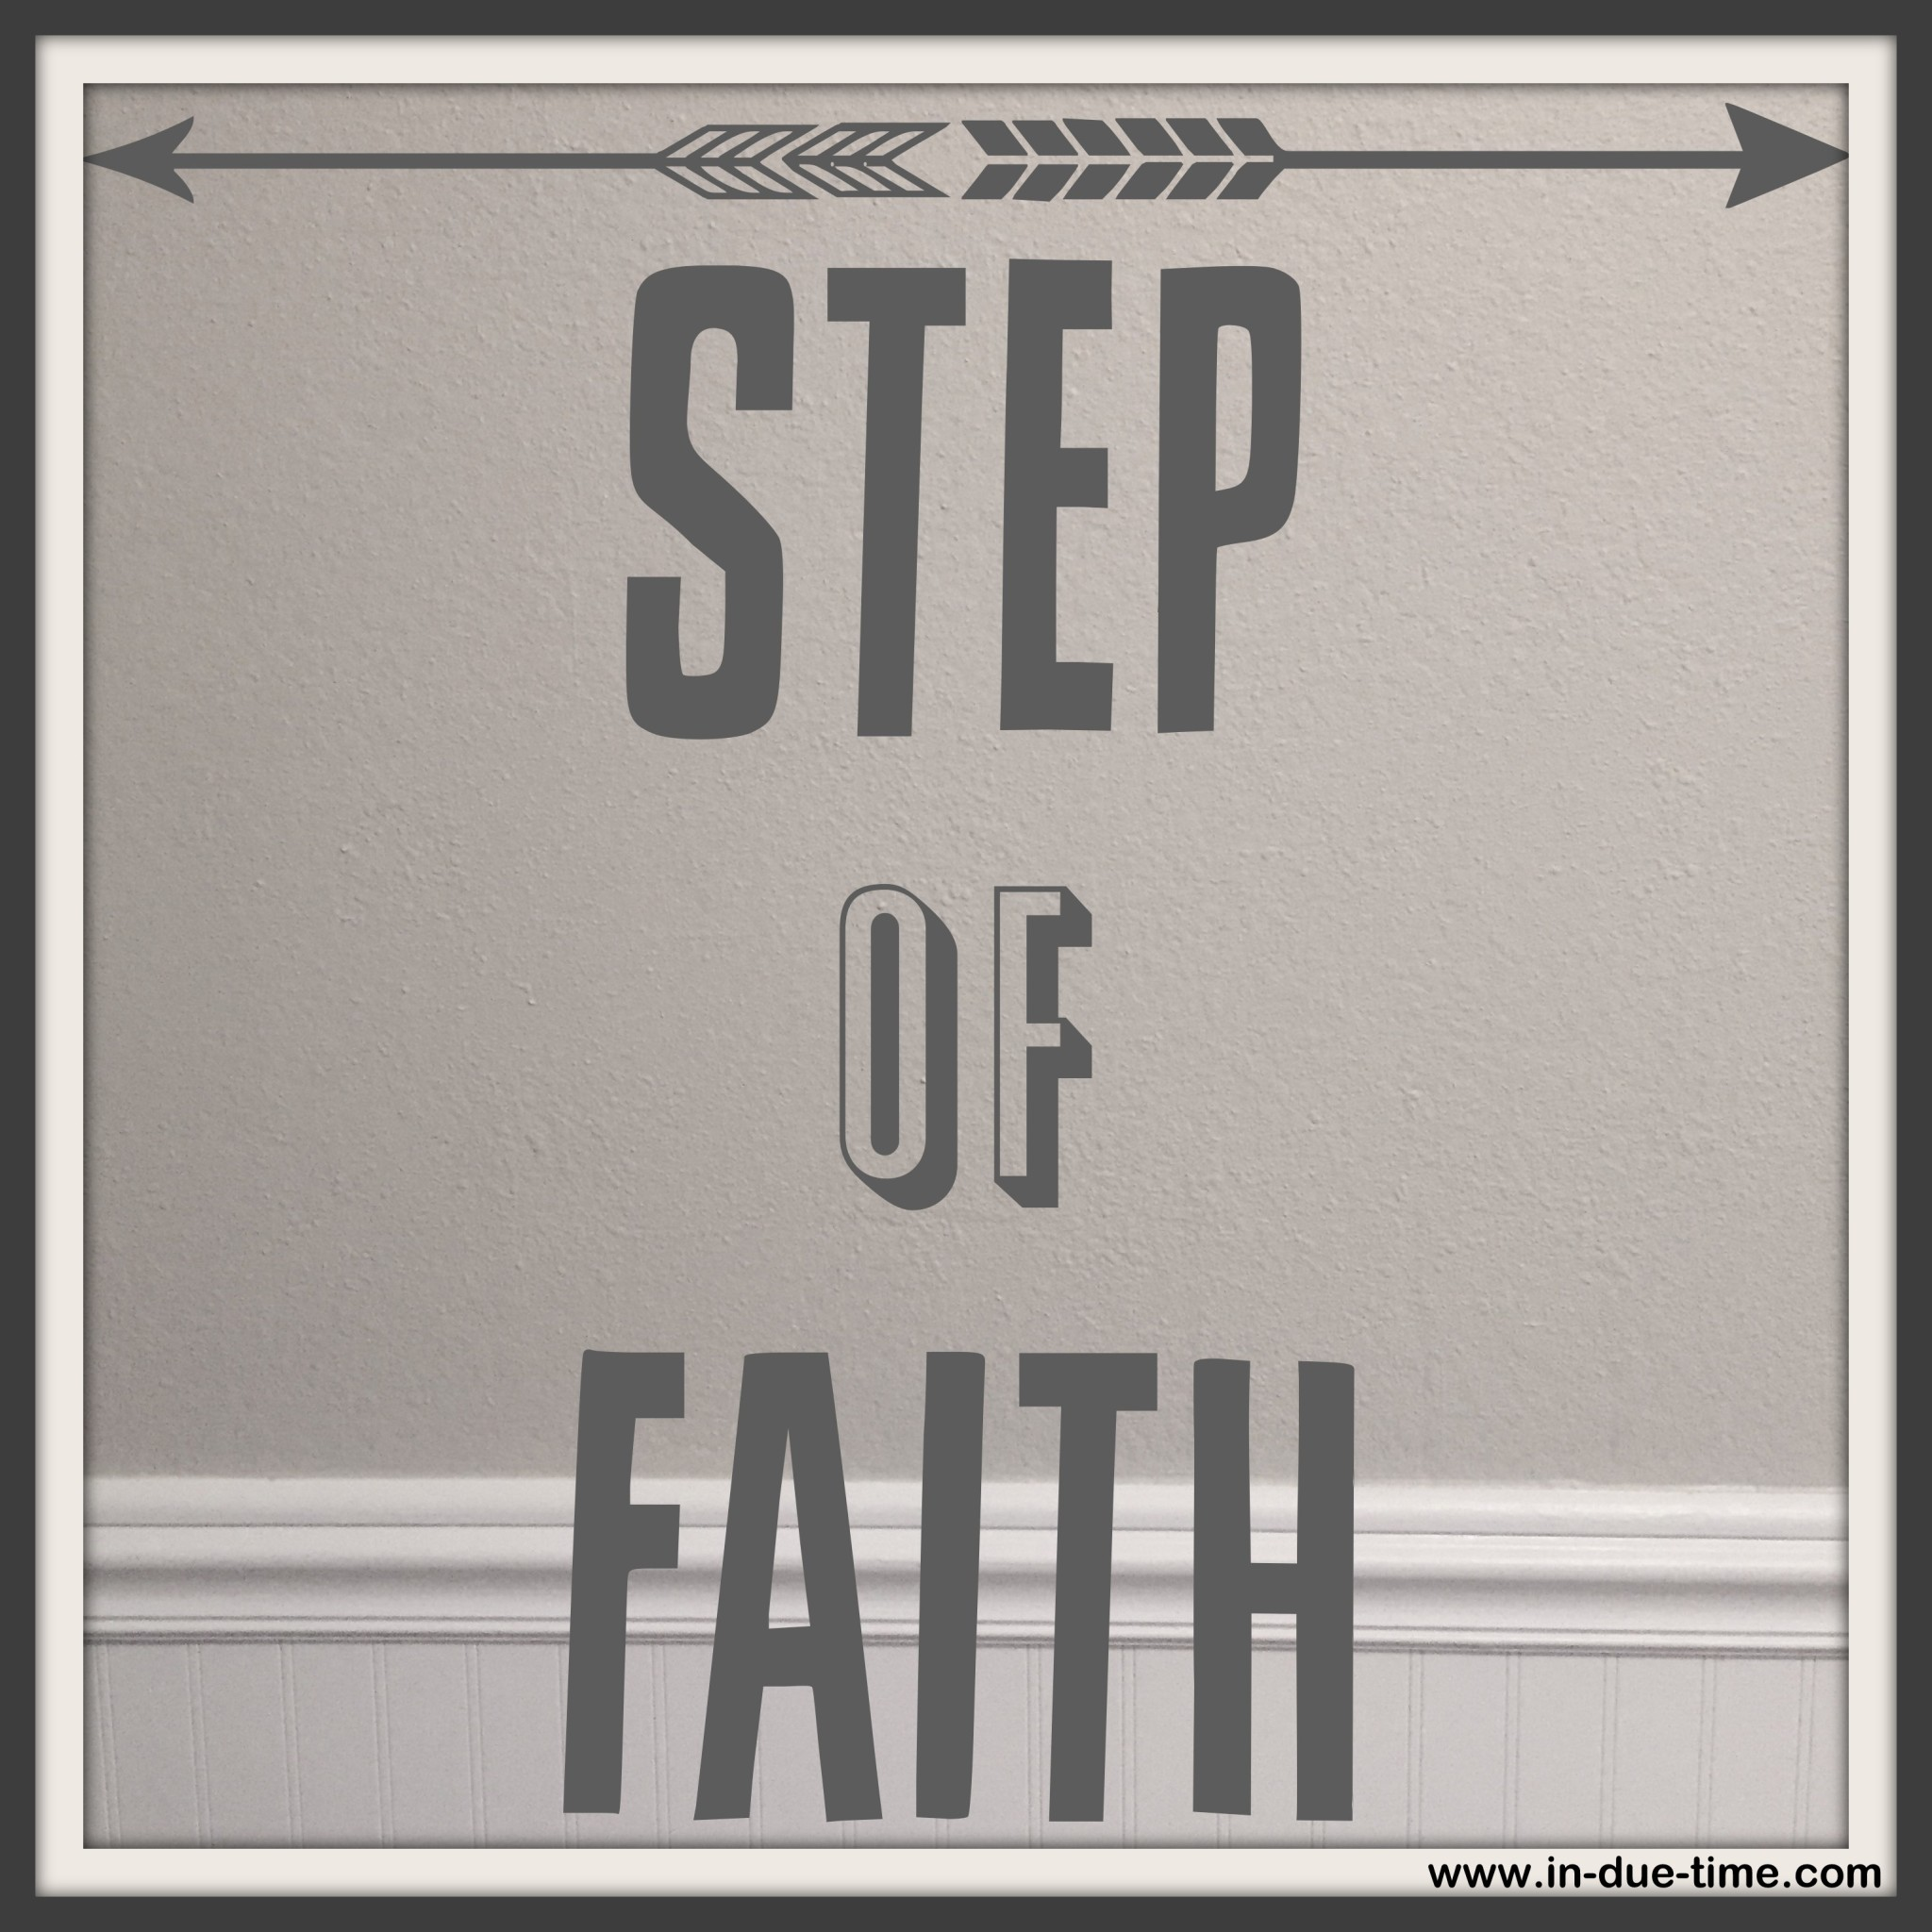 Step of Faith - In Due Time Blog